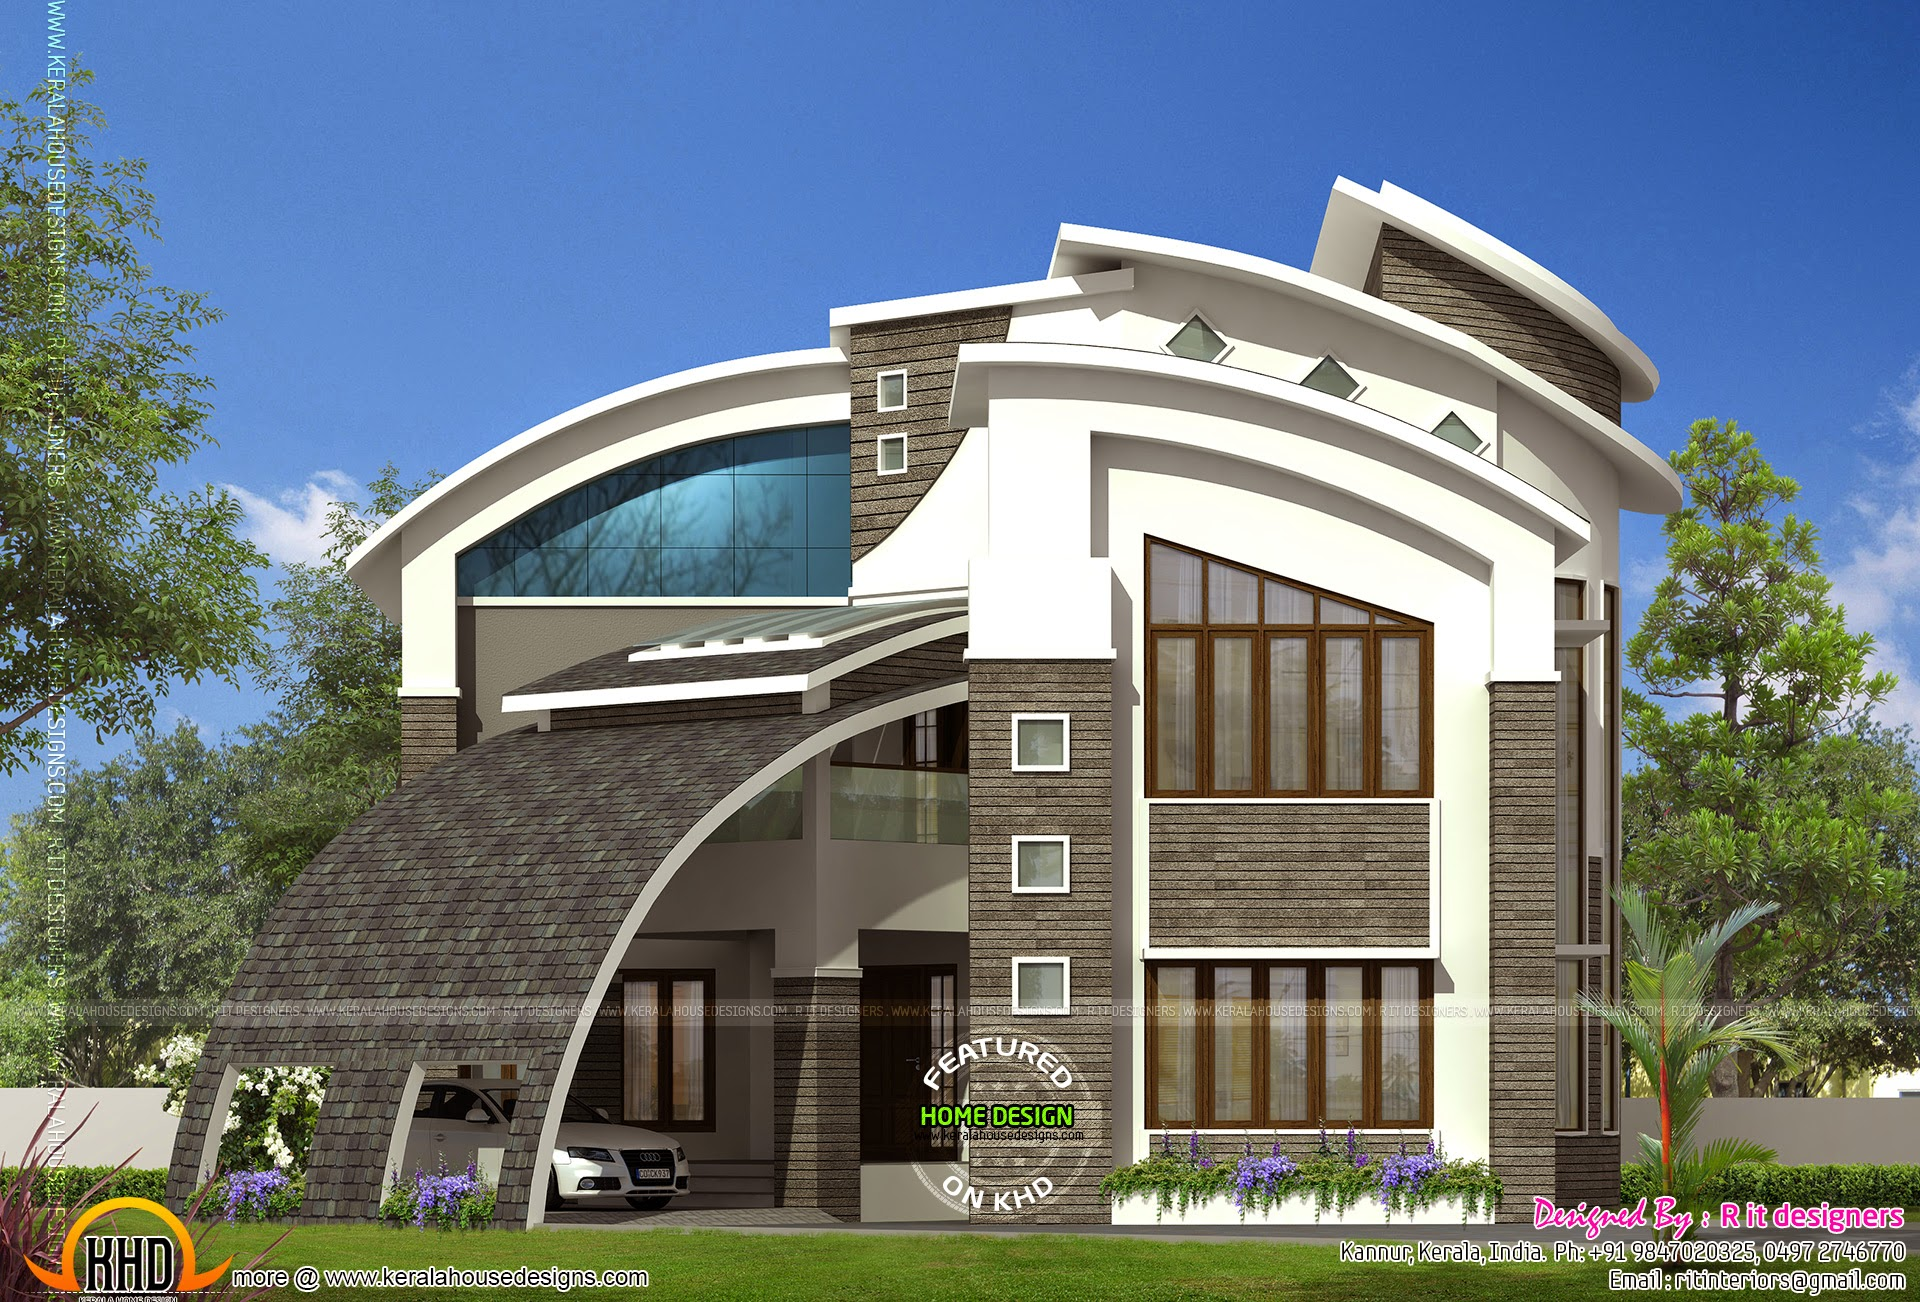 Kerala home design siddu buzz Modern home building plans